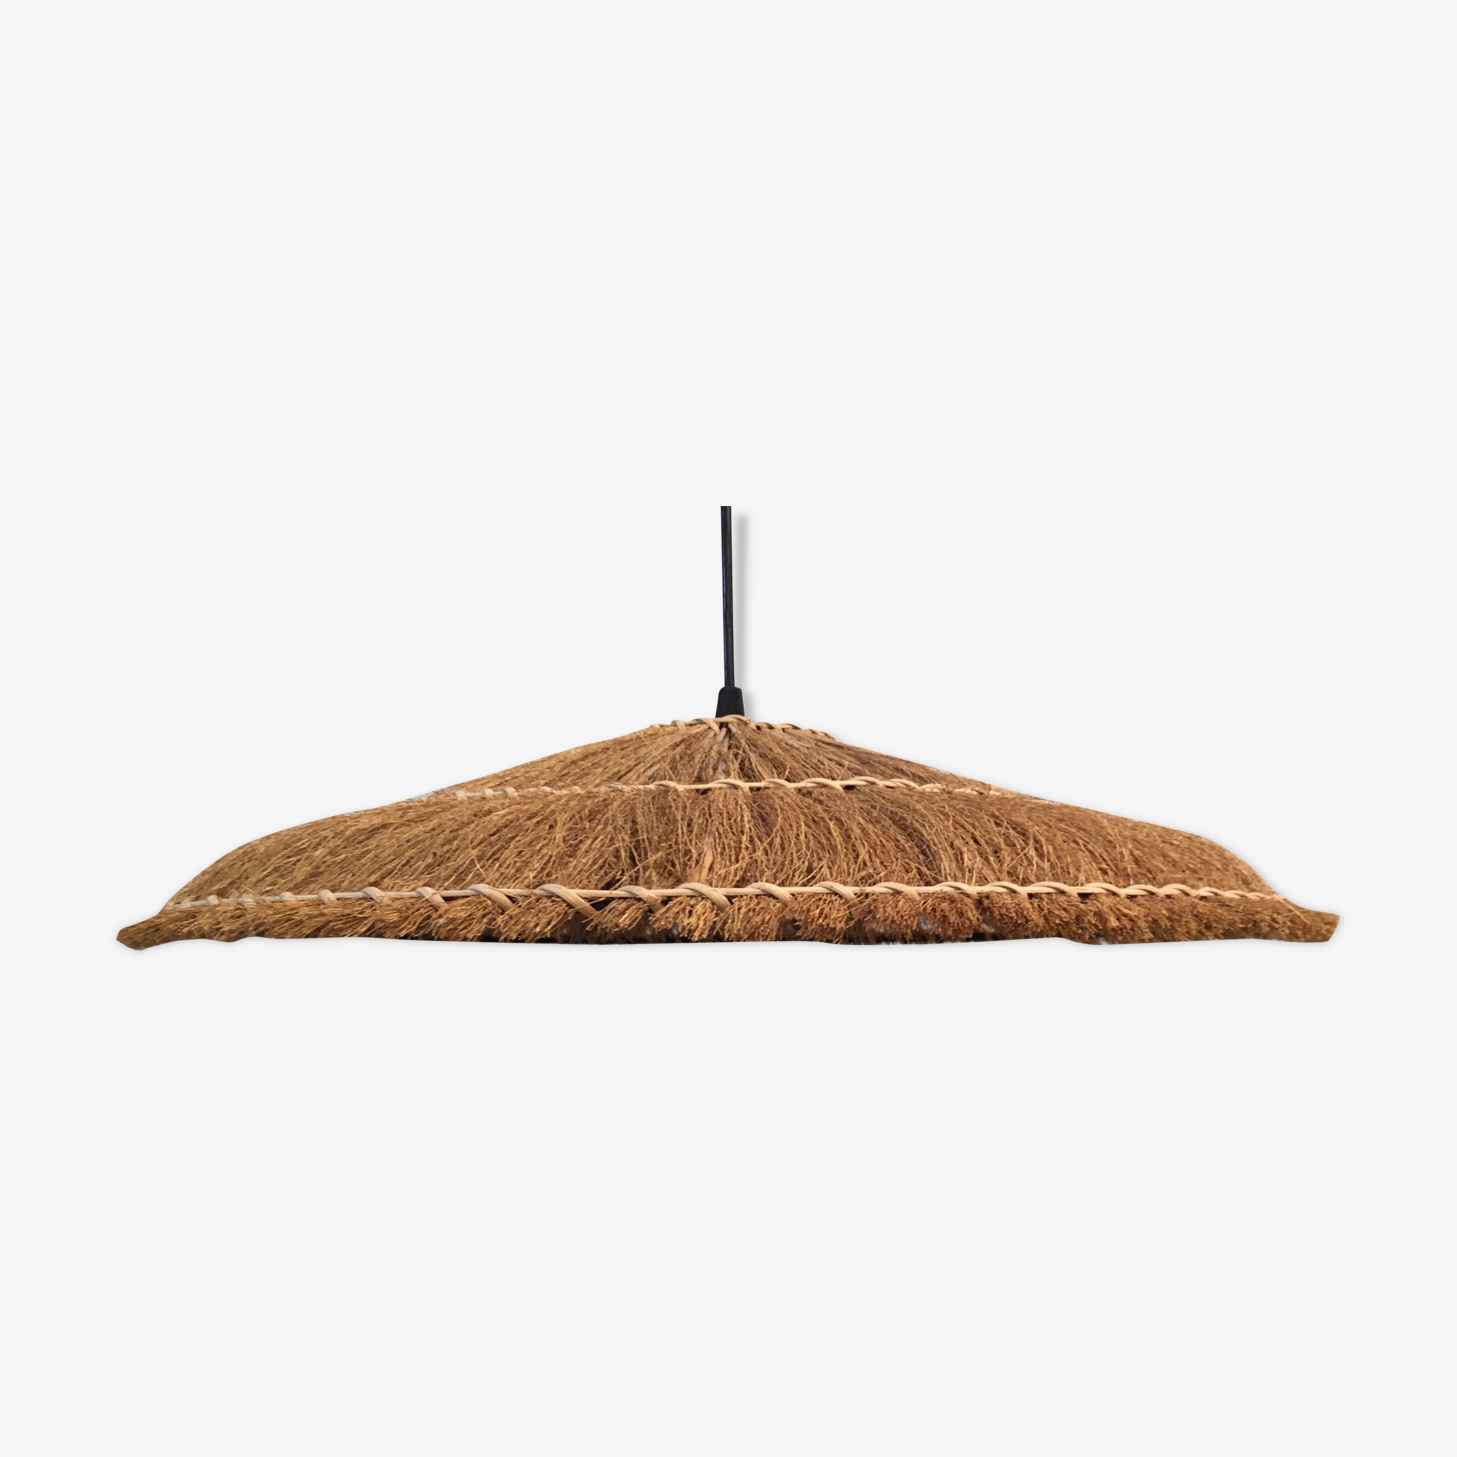 Hanging lamp of straw and wicker